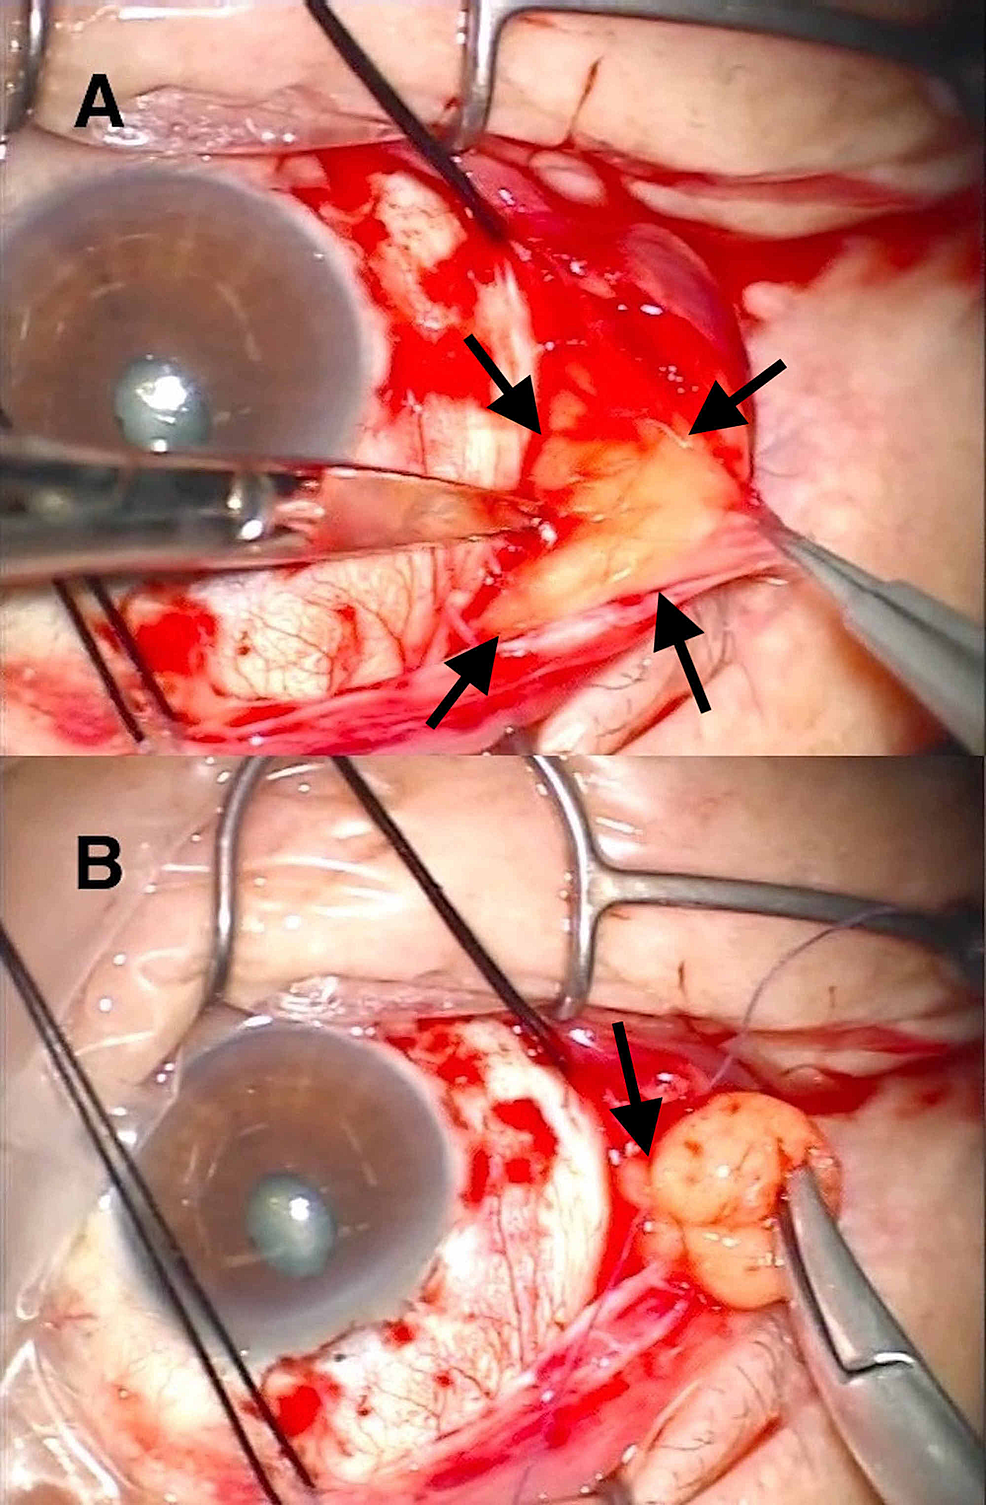 Perspective-of-the-surgeon.-Right-eye-of-a-70-year-old-man.